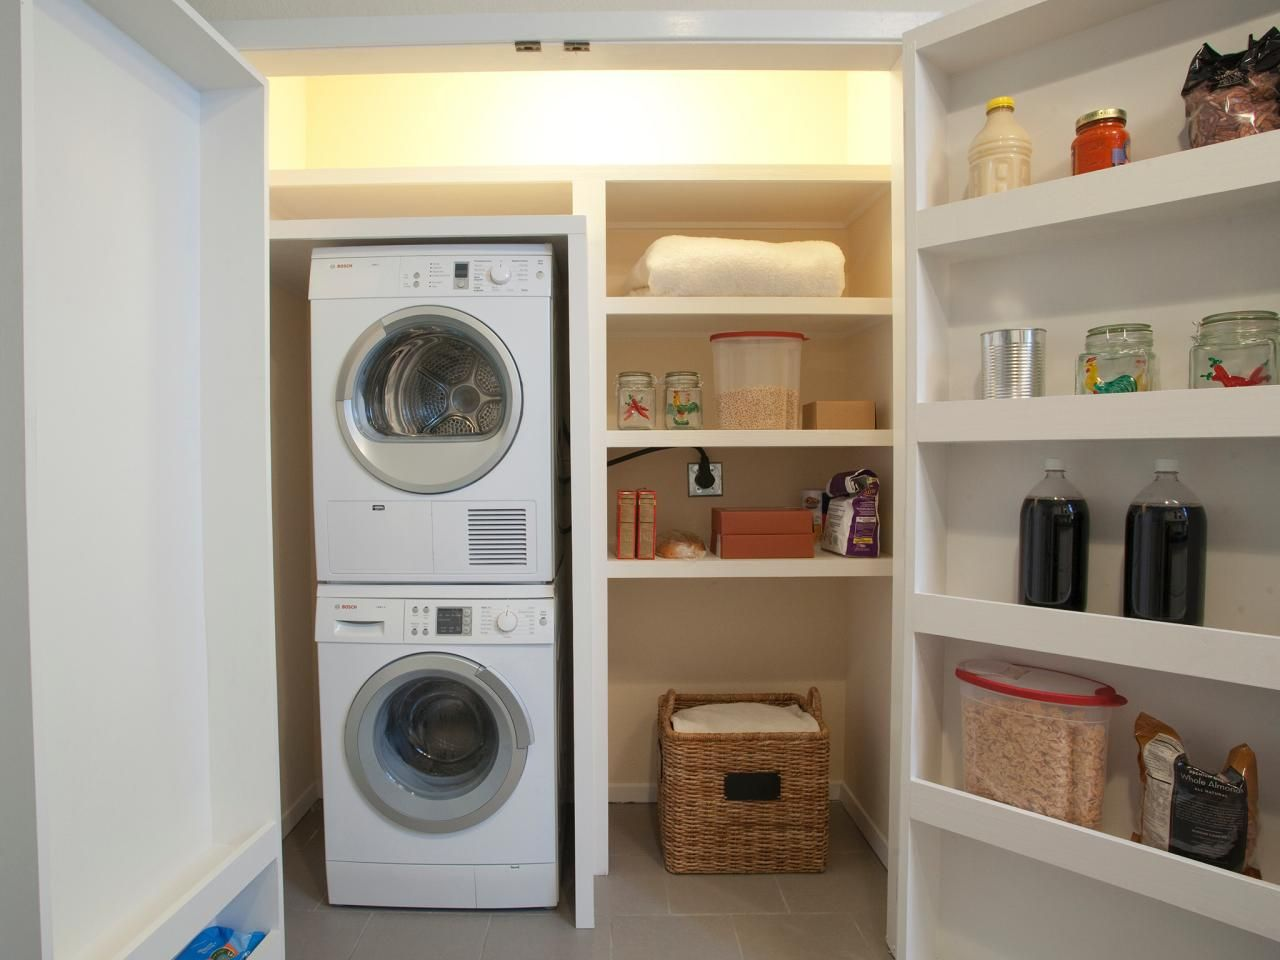 A Stacked Washer And Dryer Allows Ample Room For Convenient Storage Space  In This Laundry Closet